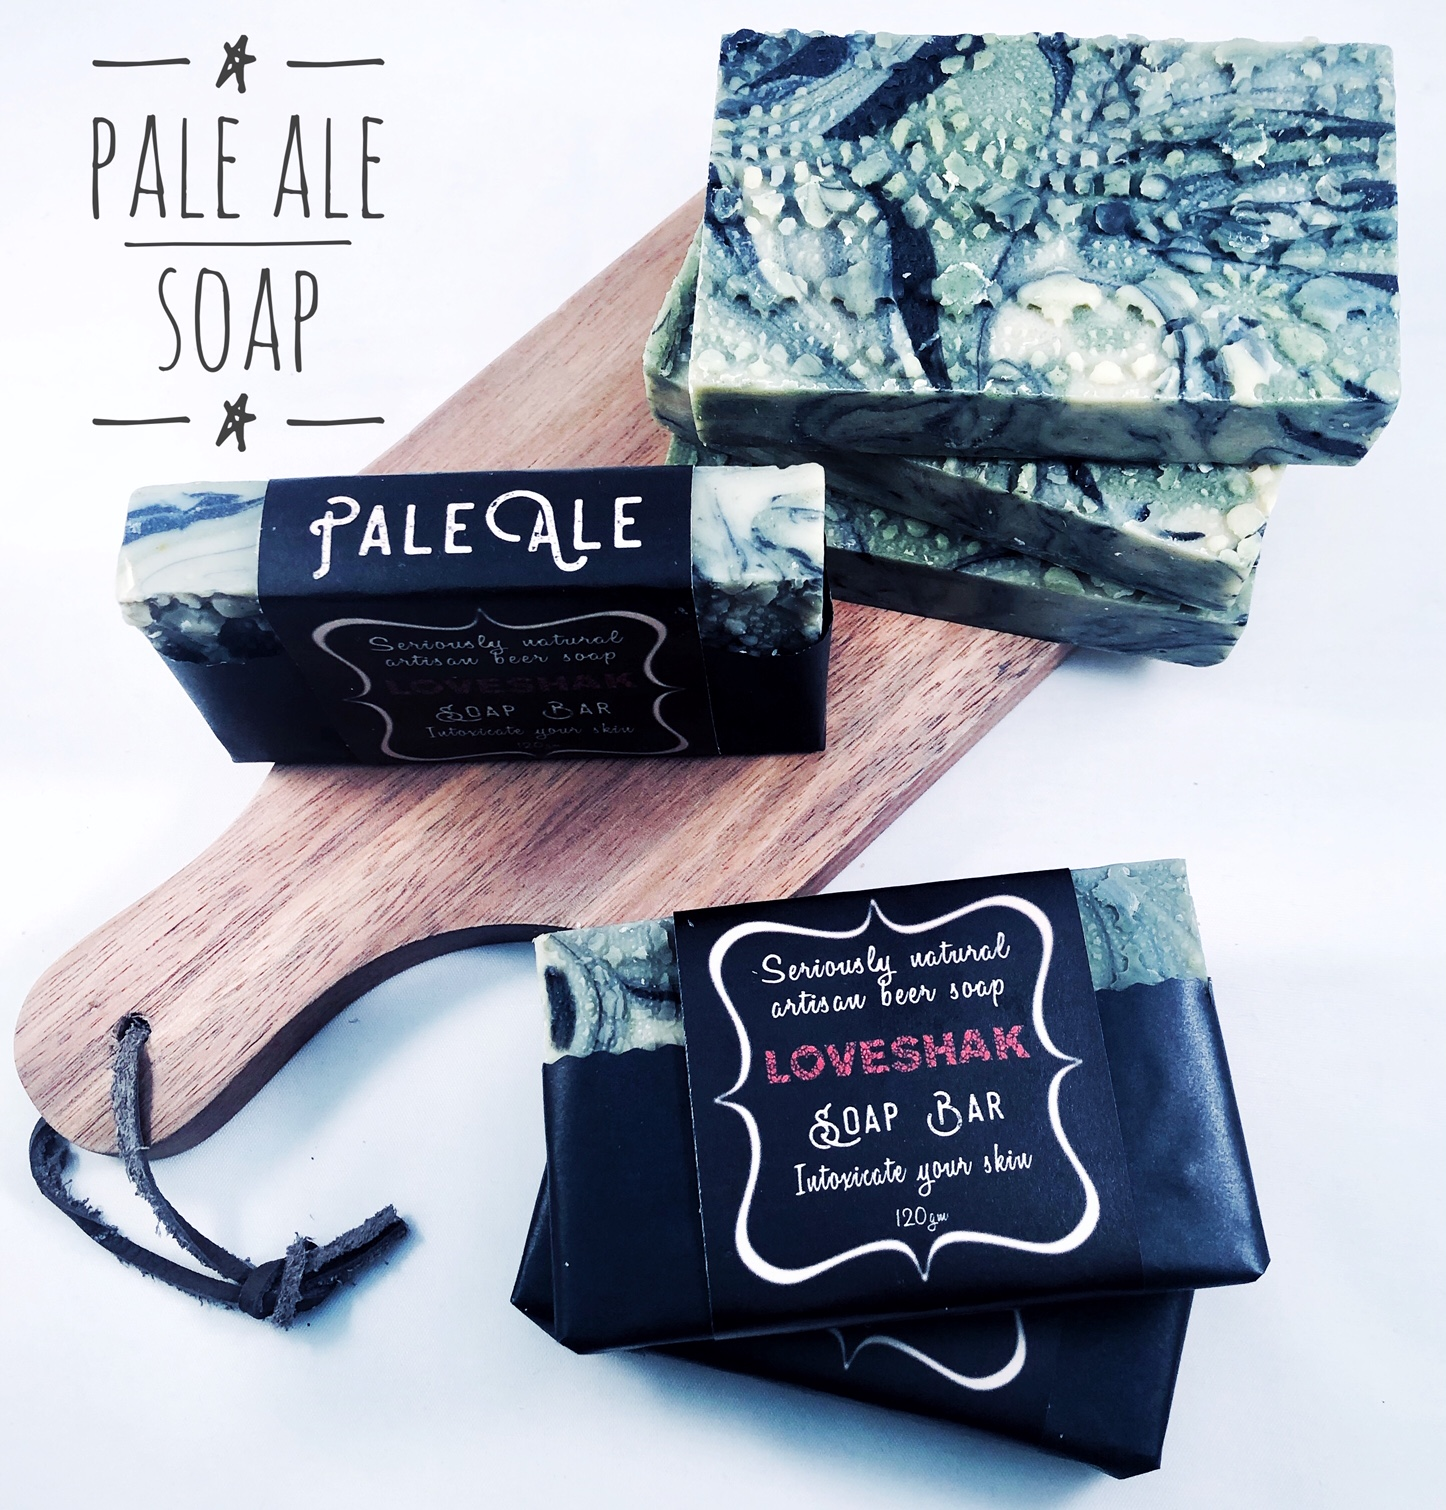 pale ale soap.jpg